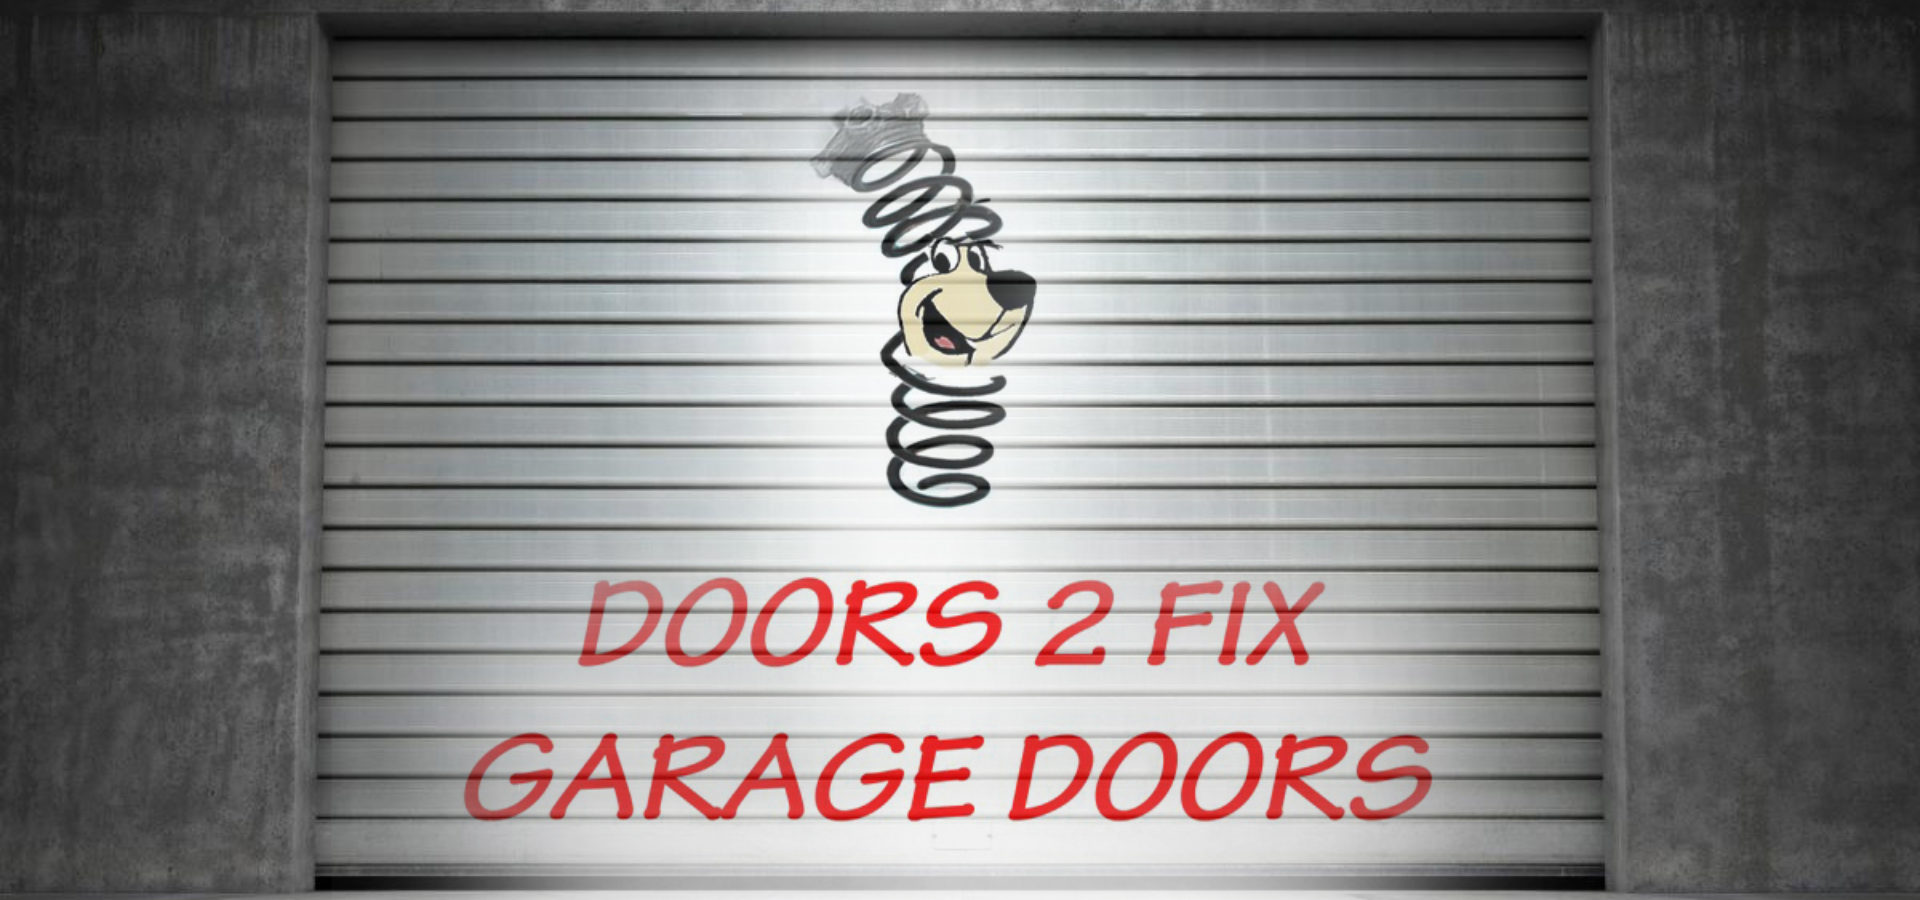 Garage Door Repair Company Aurora, CO.